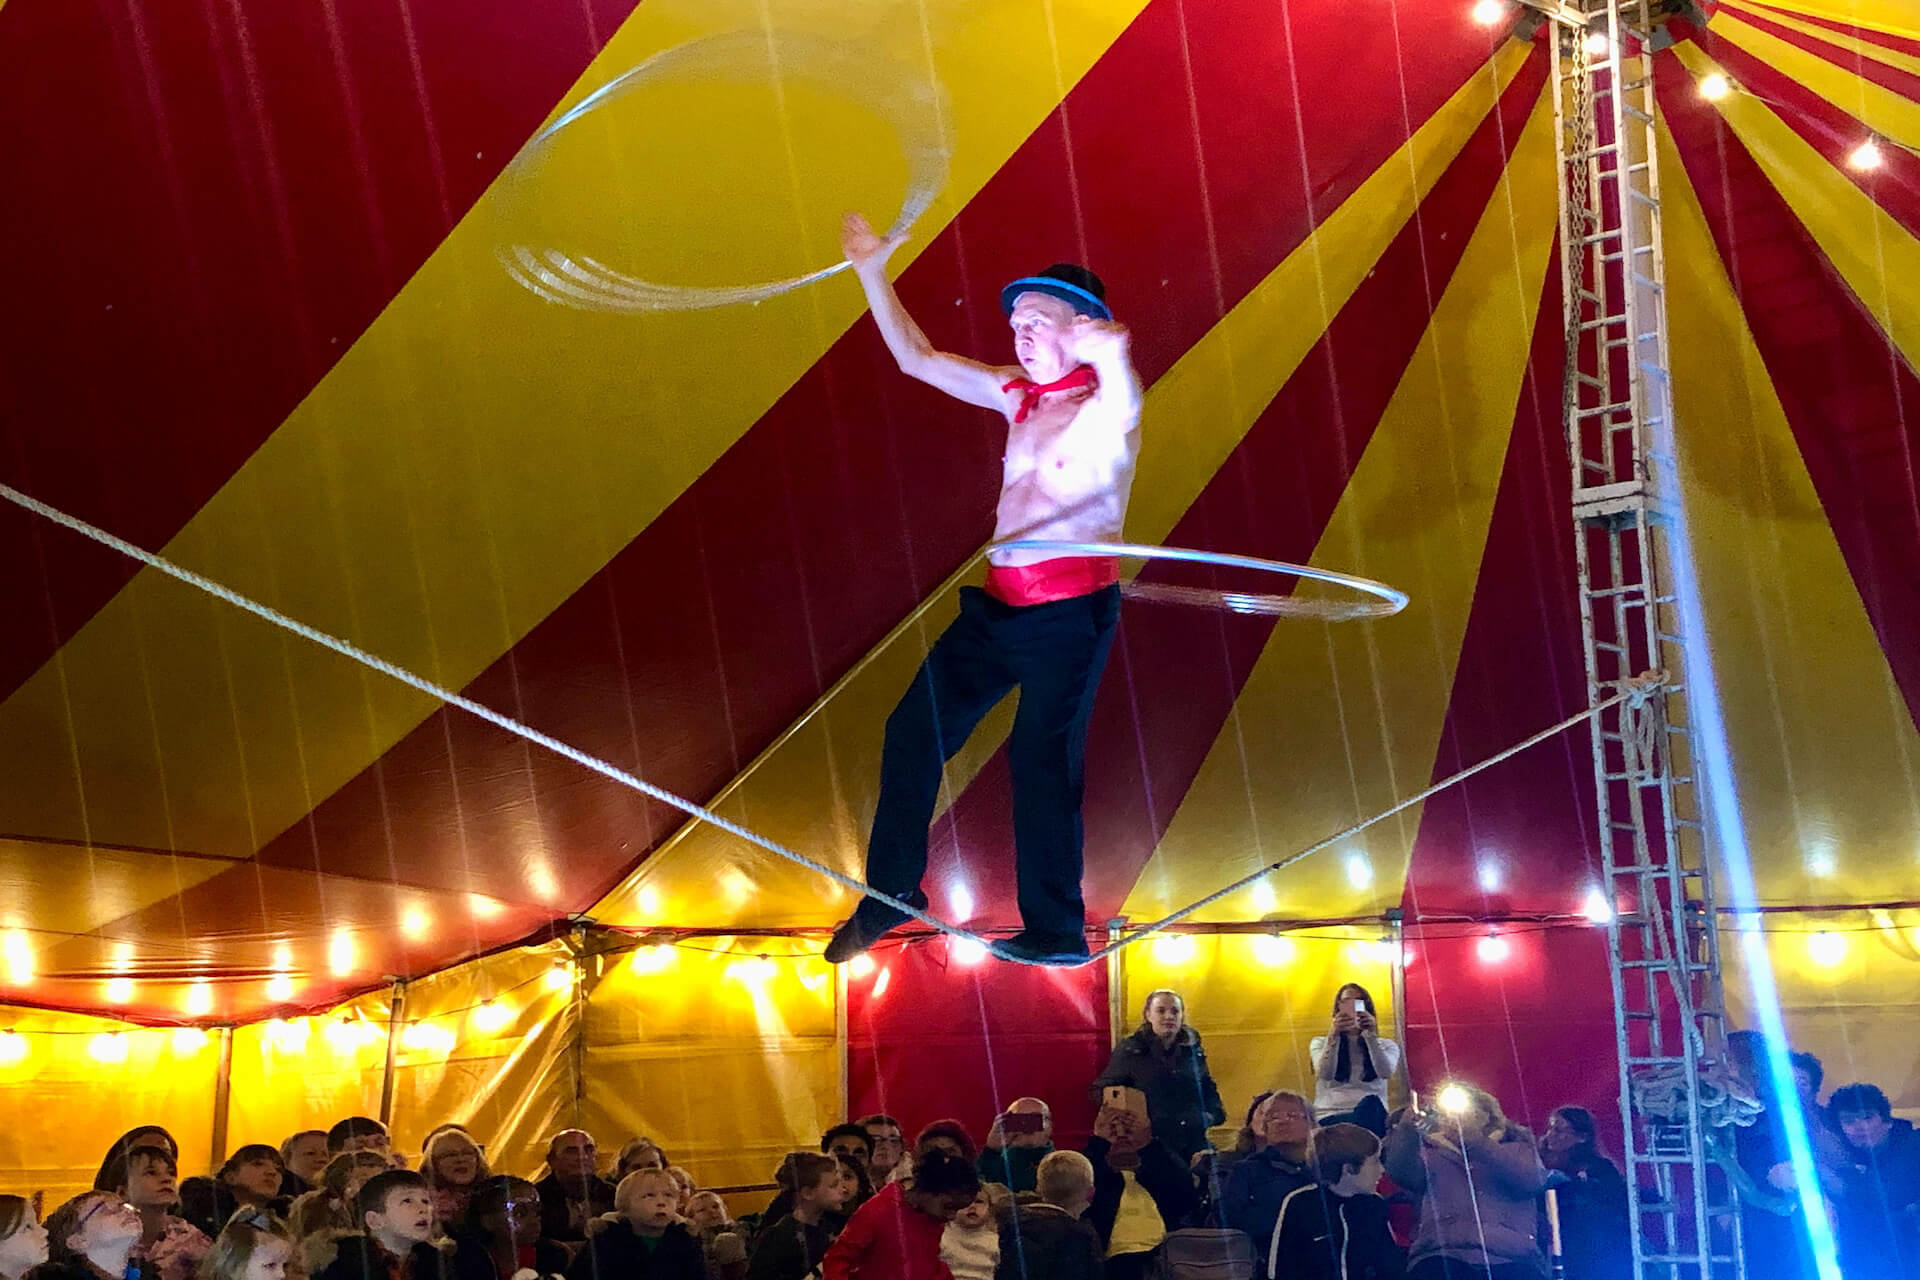 Fiddler on the rope in circus show